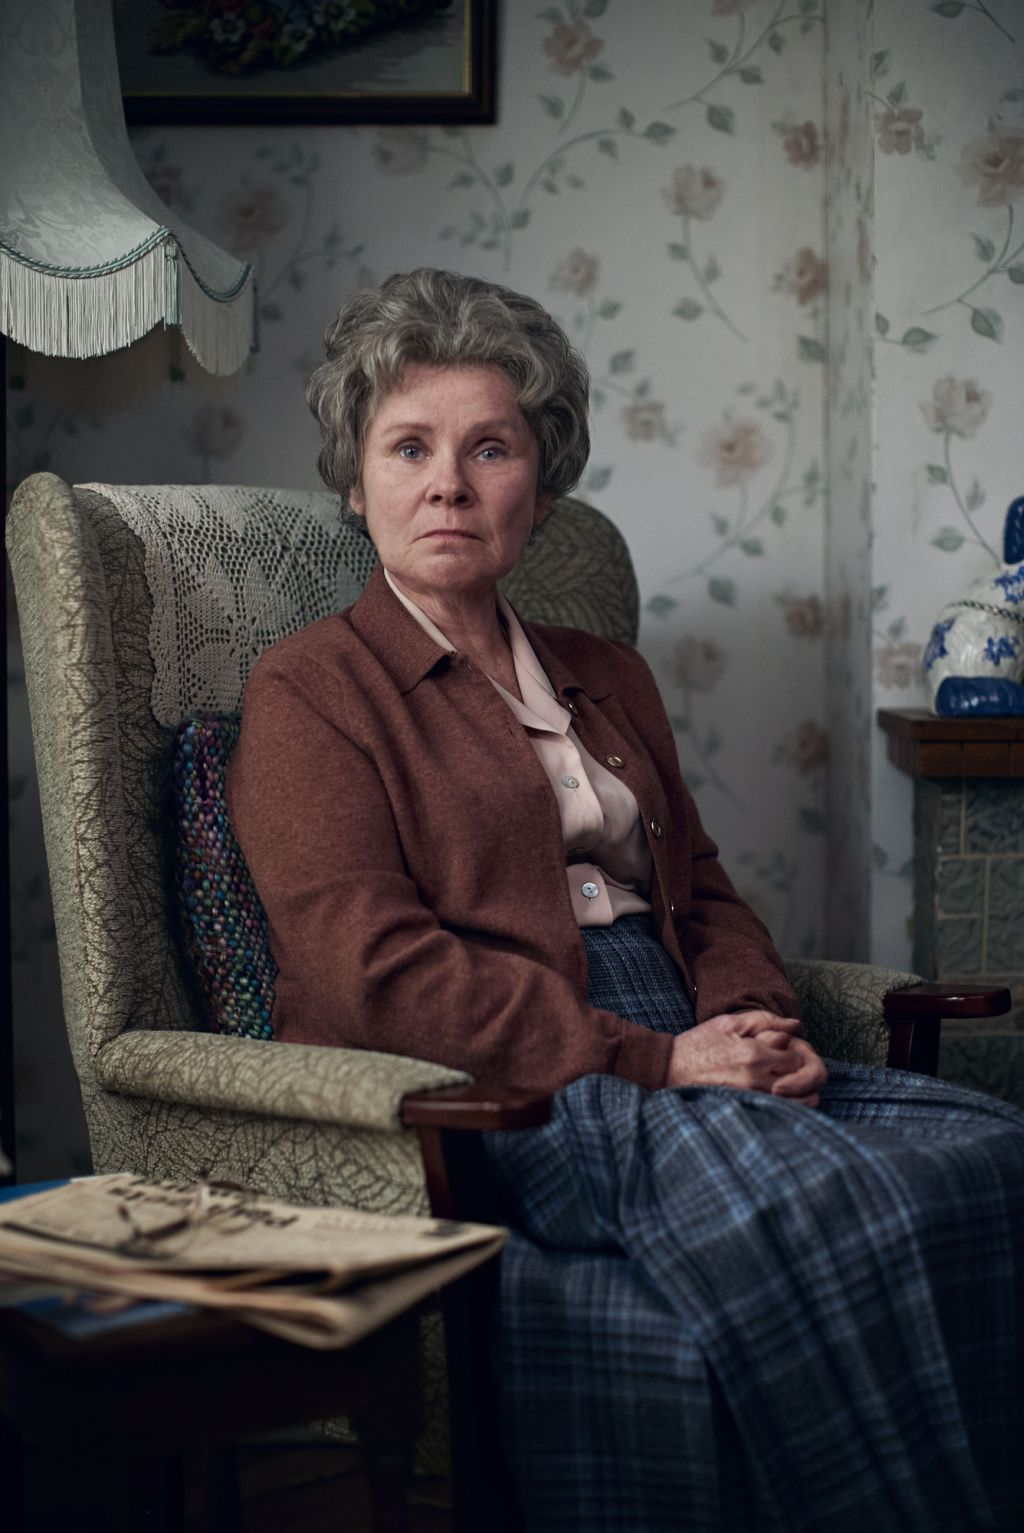 Imelda Staunton as Irene in 'A Lady of Letters'